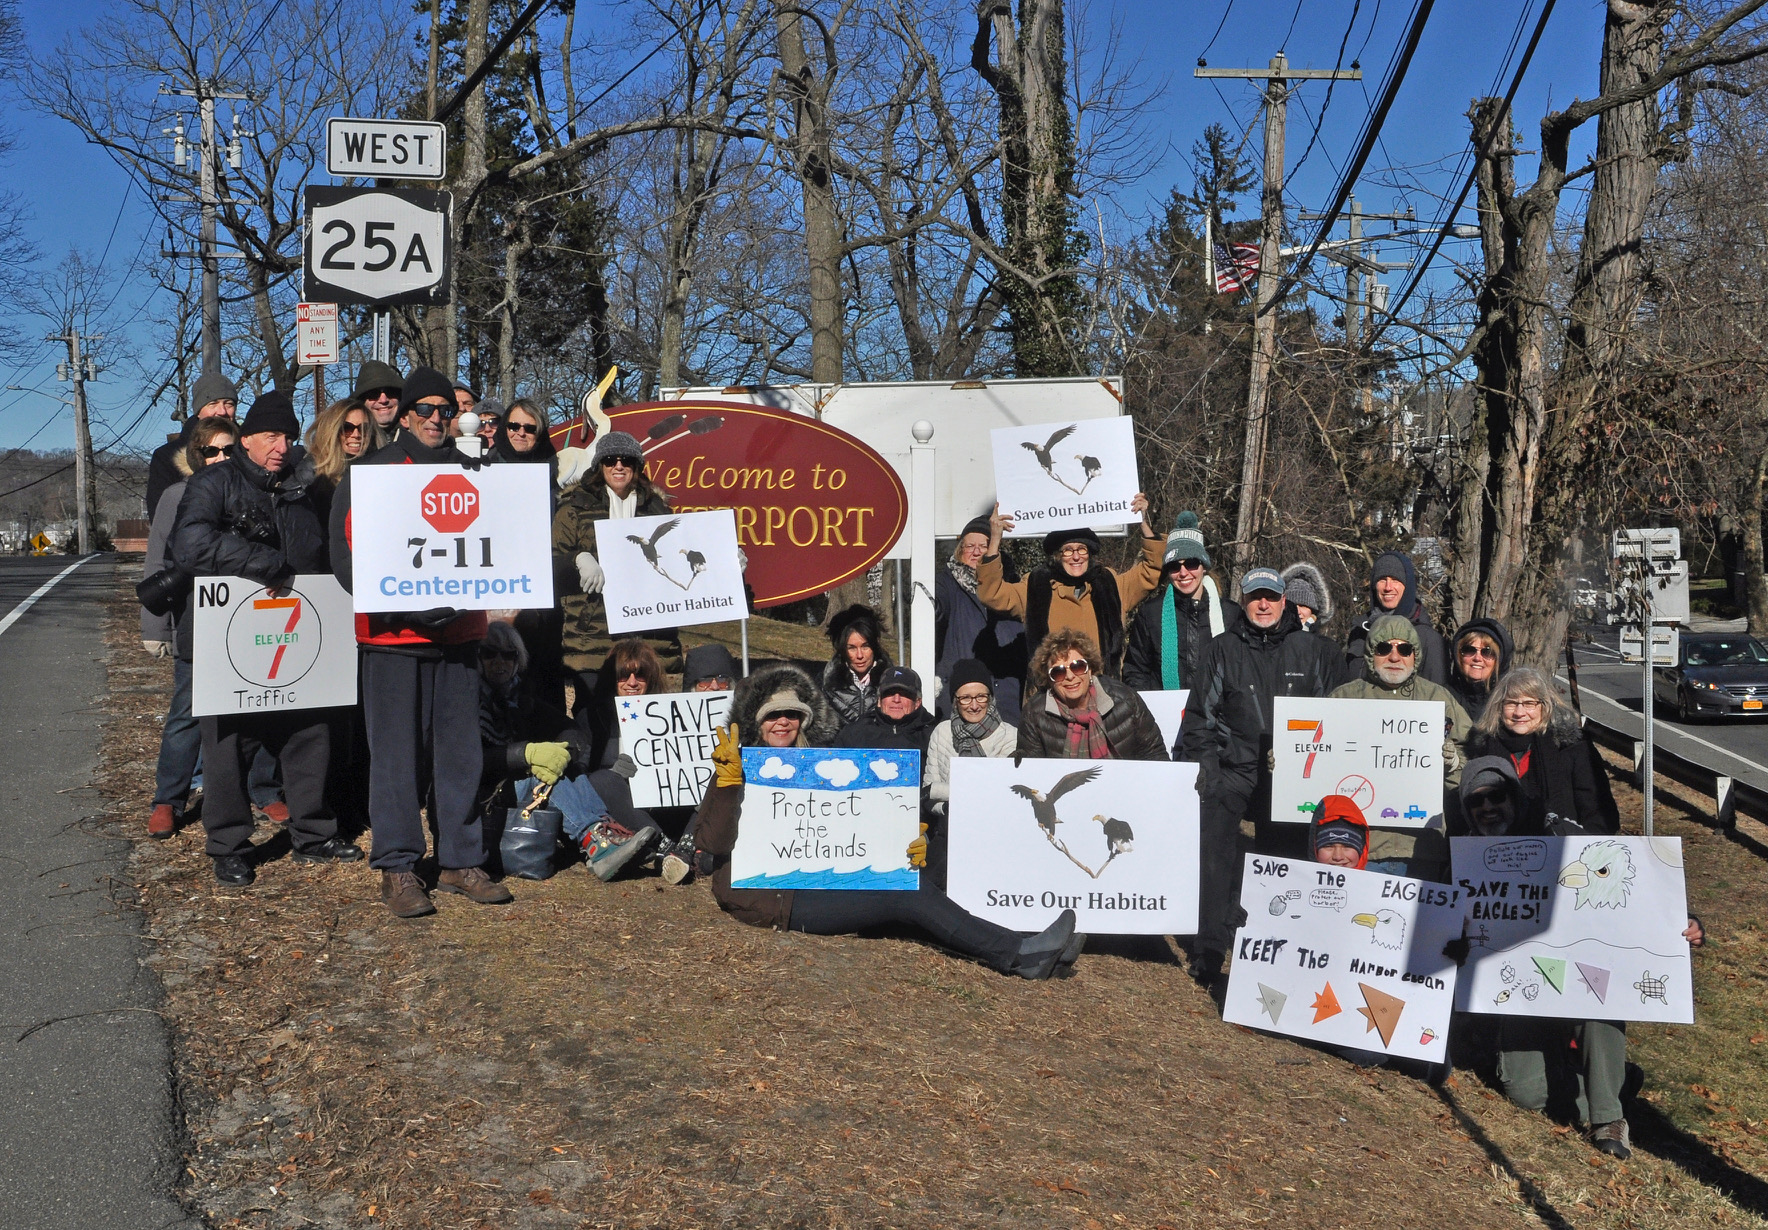 Members of the Centerport Harbor Civic Association rally on Route 25A in Centerport Saturday to urge town officials to protect the habitat of bald eagles living near Mill Pond.   Photo/Centerport Harbor Civic Association